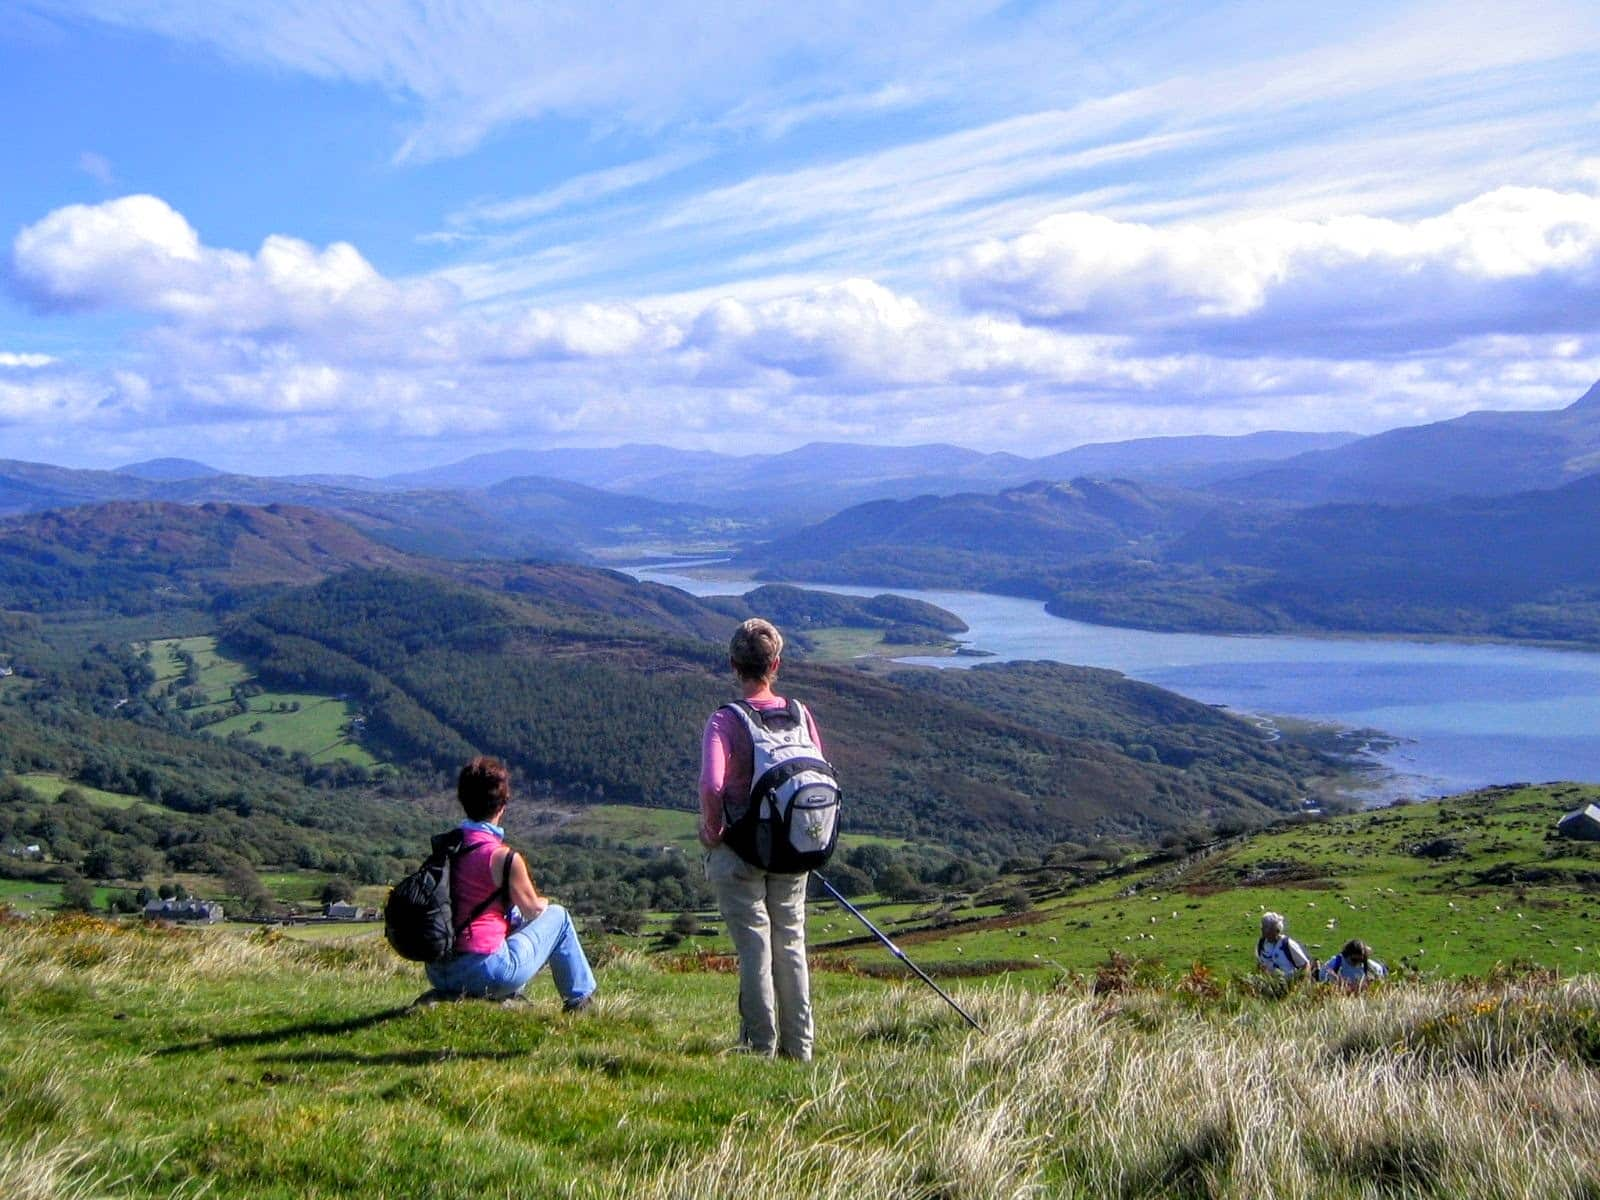 Two women gazing over the Mawddach estuary